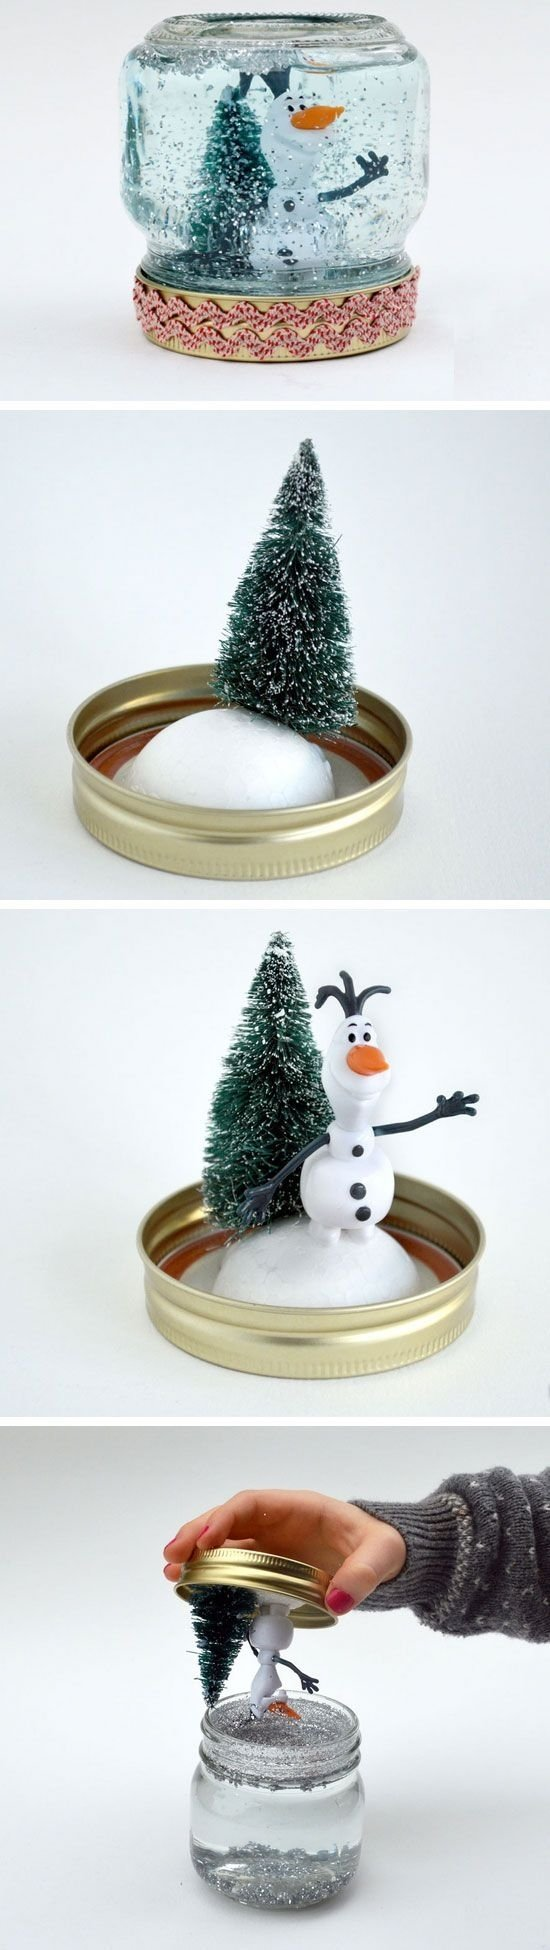 10 Elegant Cheap Christmas Craft Ideas For Kids 121 best holidays christmas kids crafts images on pinterest 2020